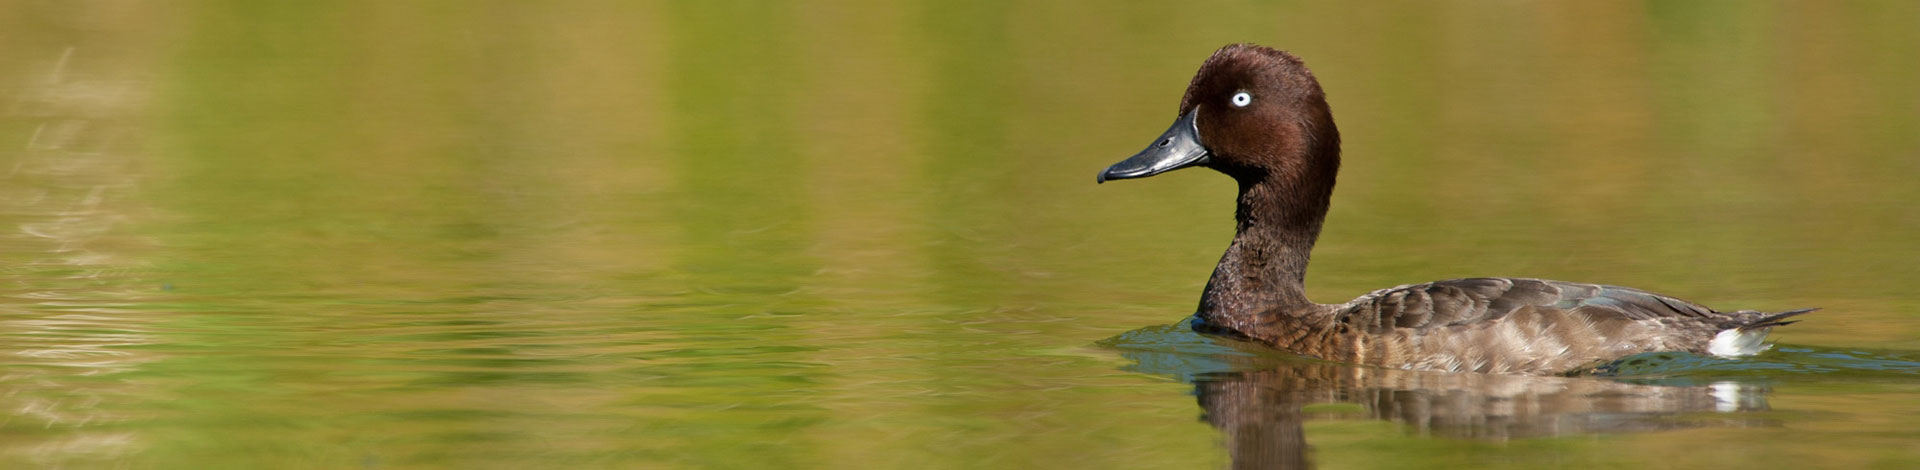 Help us release the Madagascar pochard back into the wild